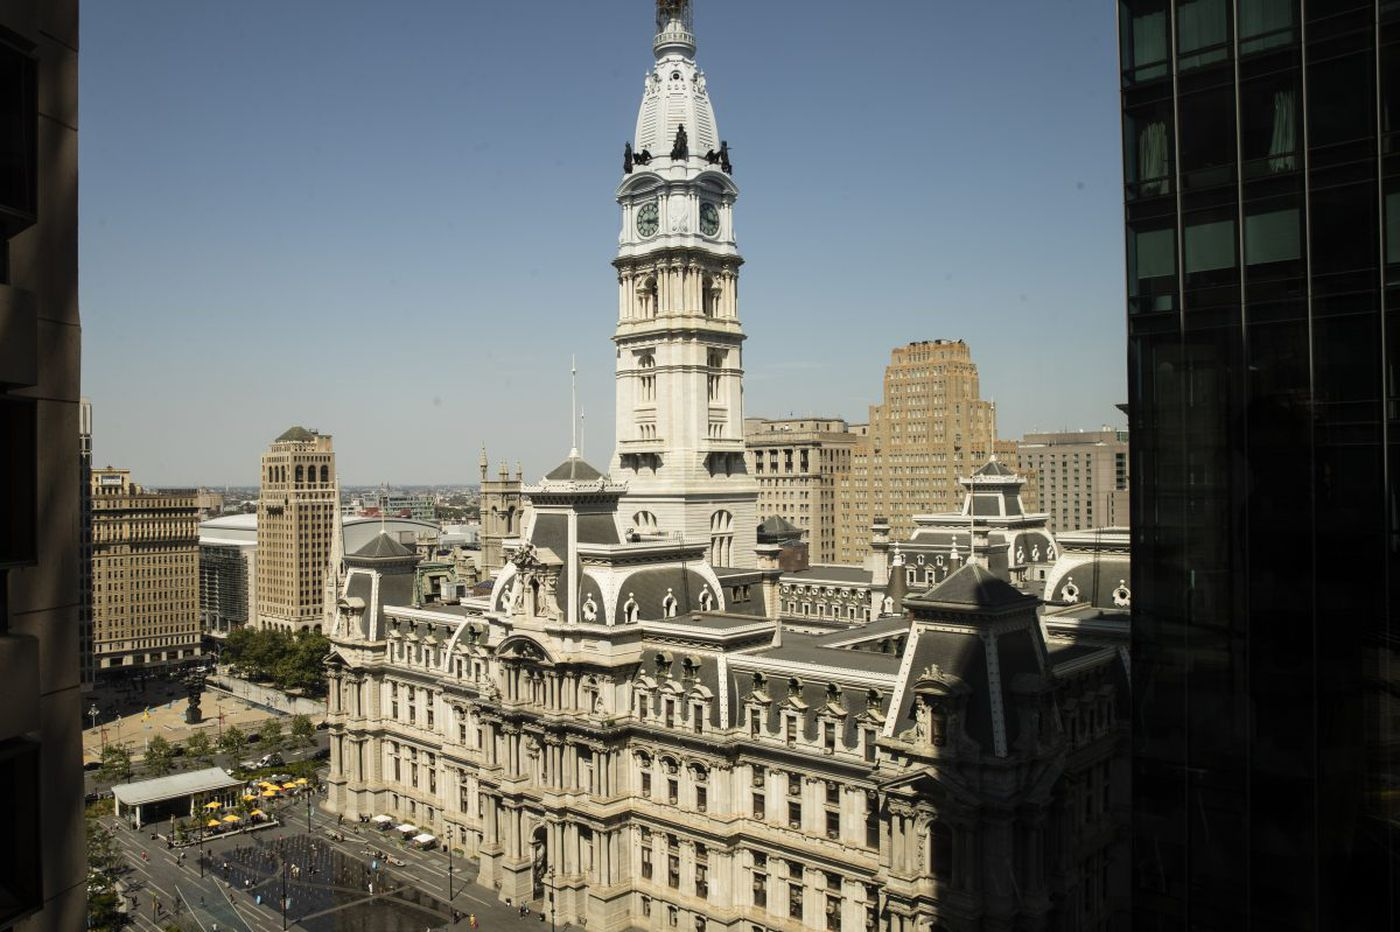 Philly pension board considers divesting from private prisons